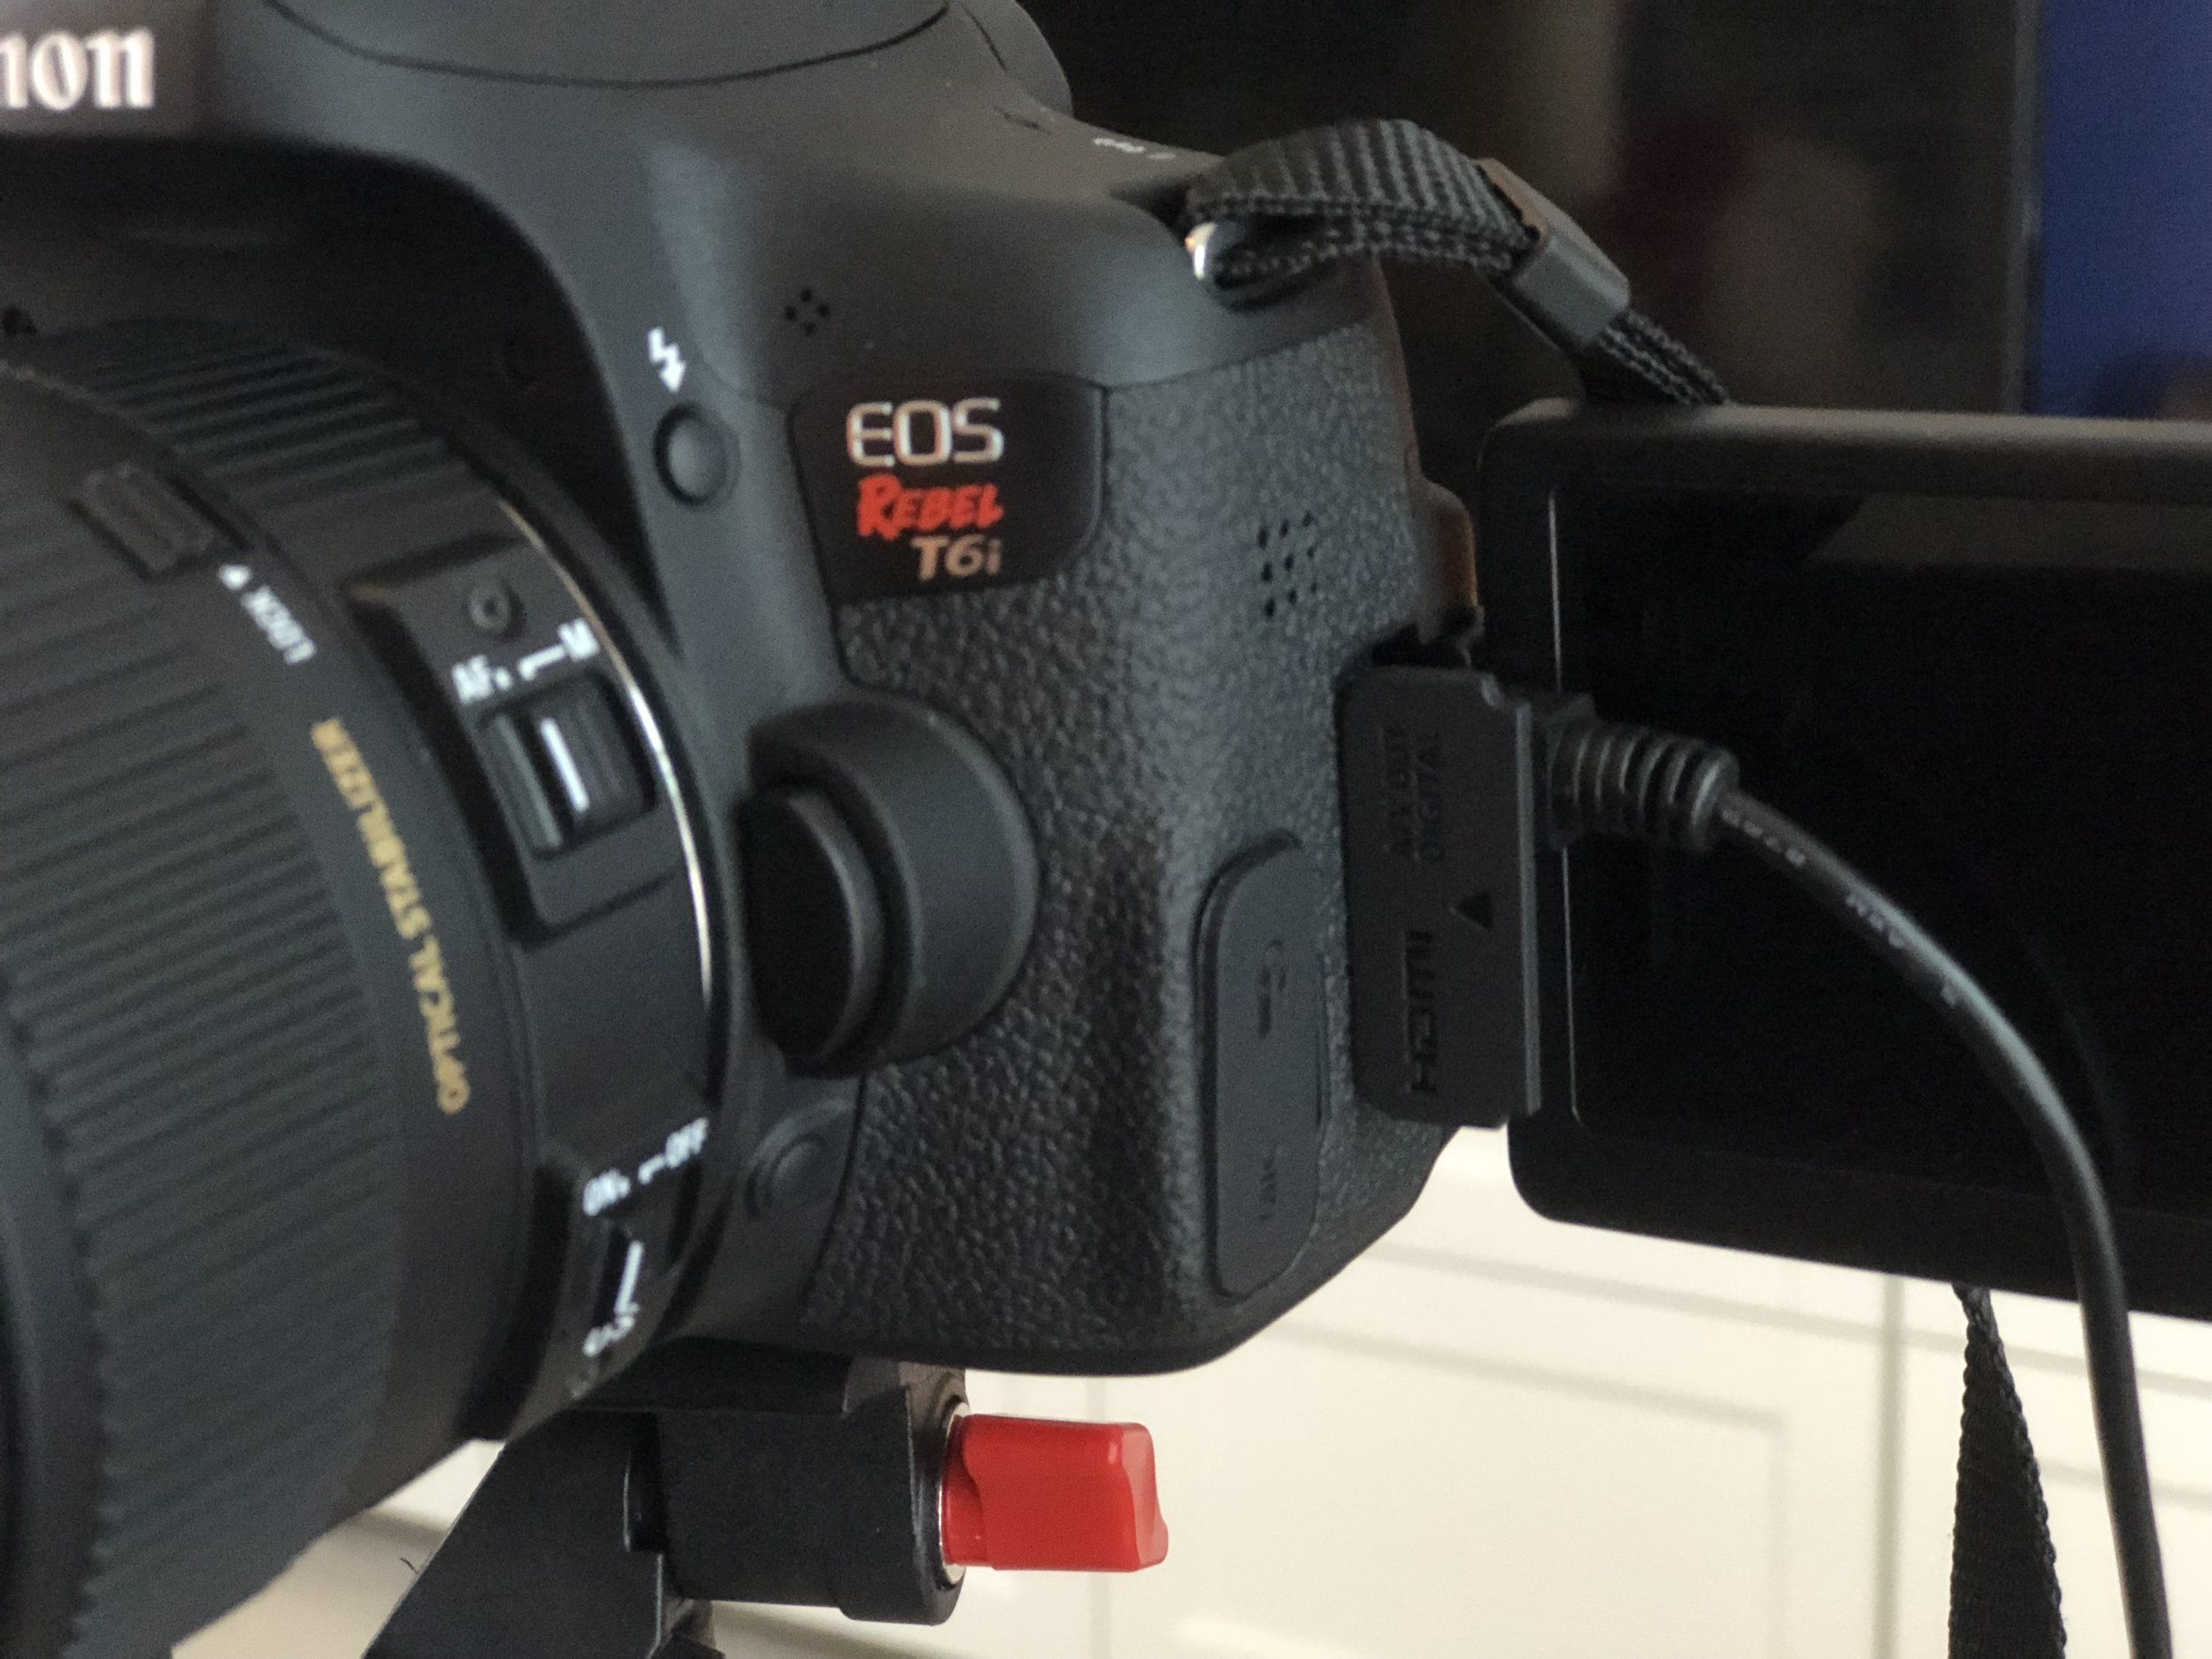 How To Use A DSLR Camera to Make Your Live Video Magical